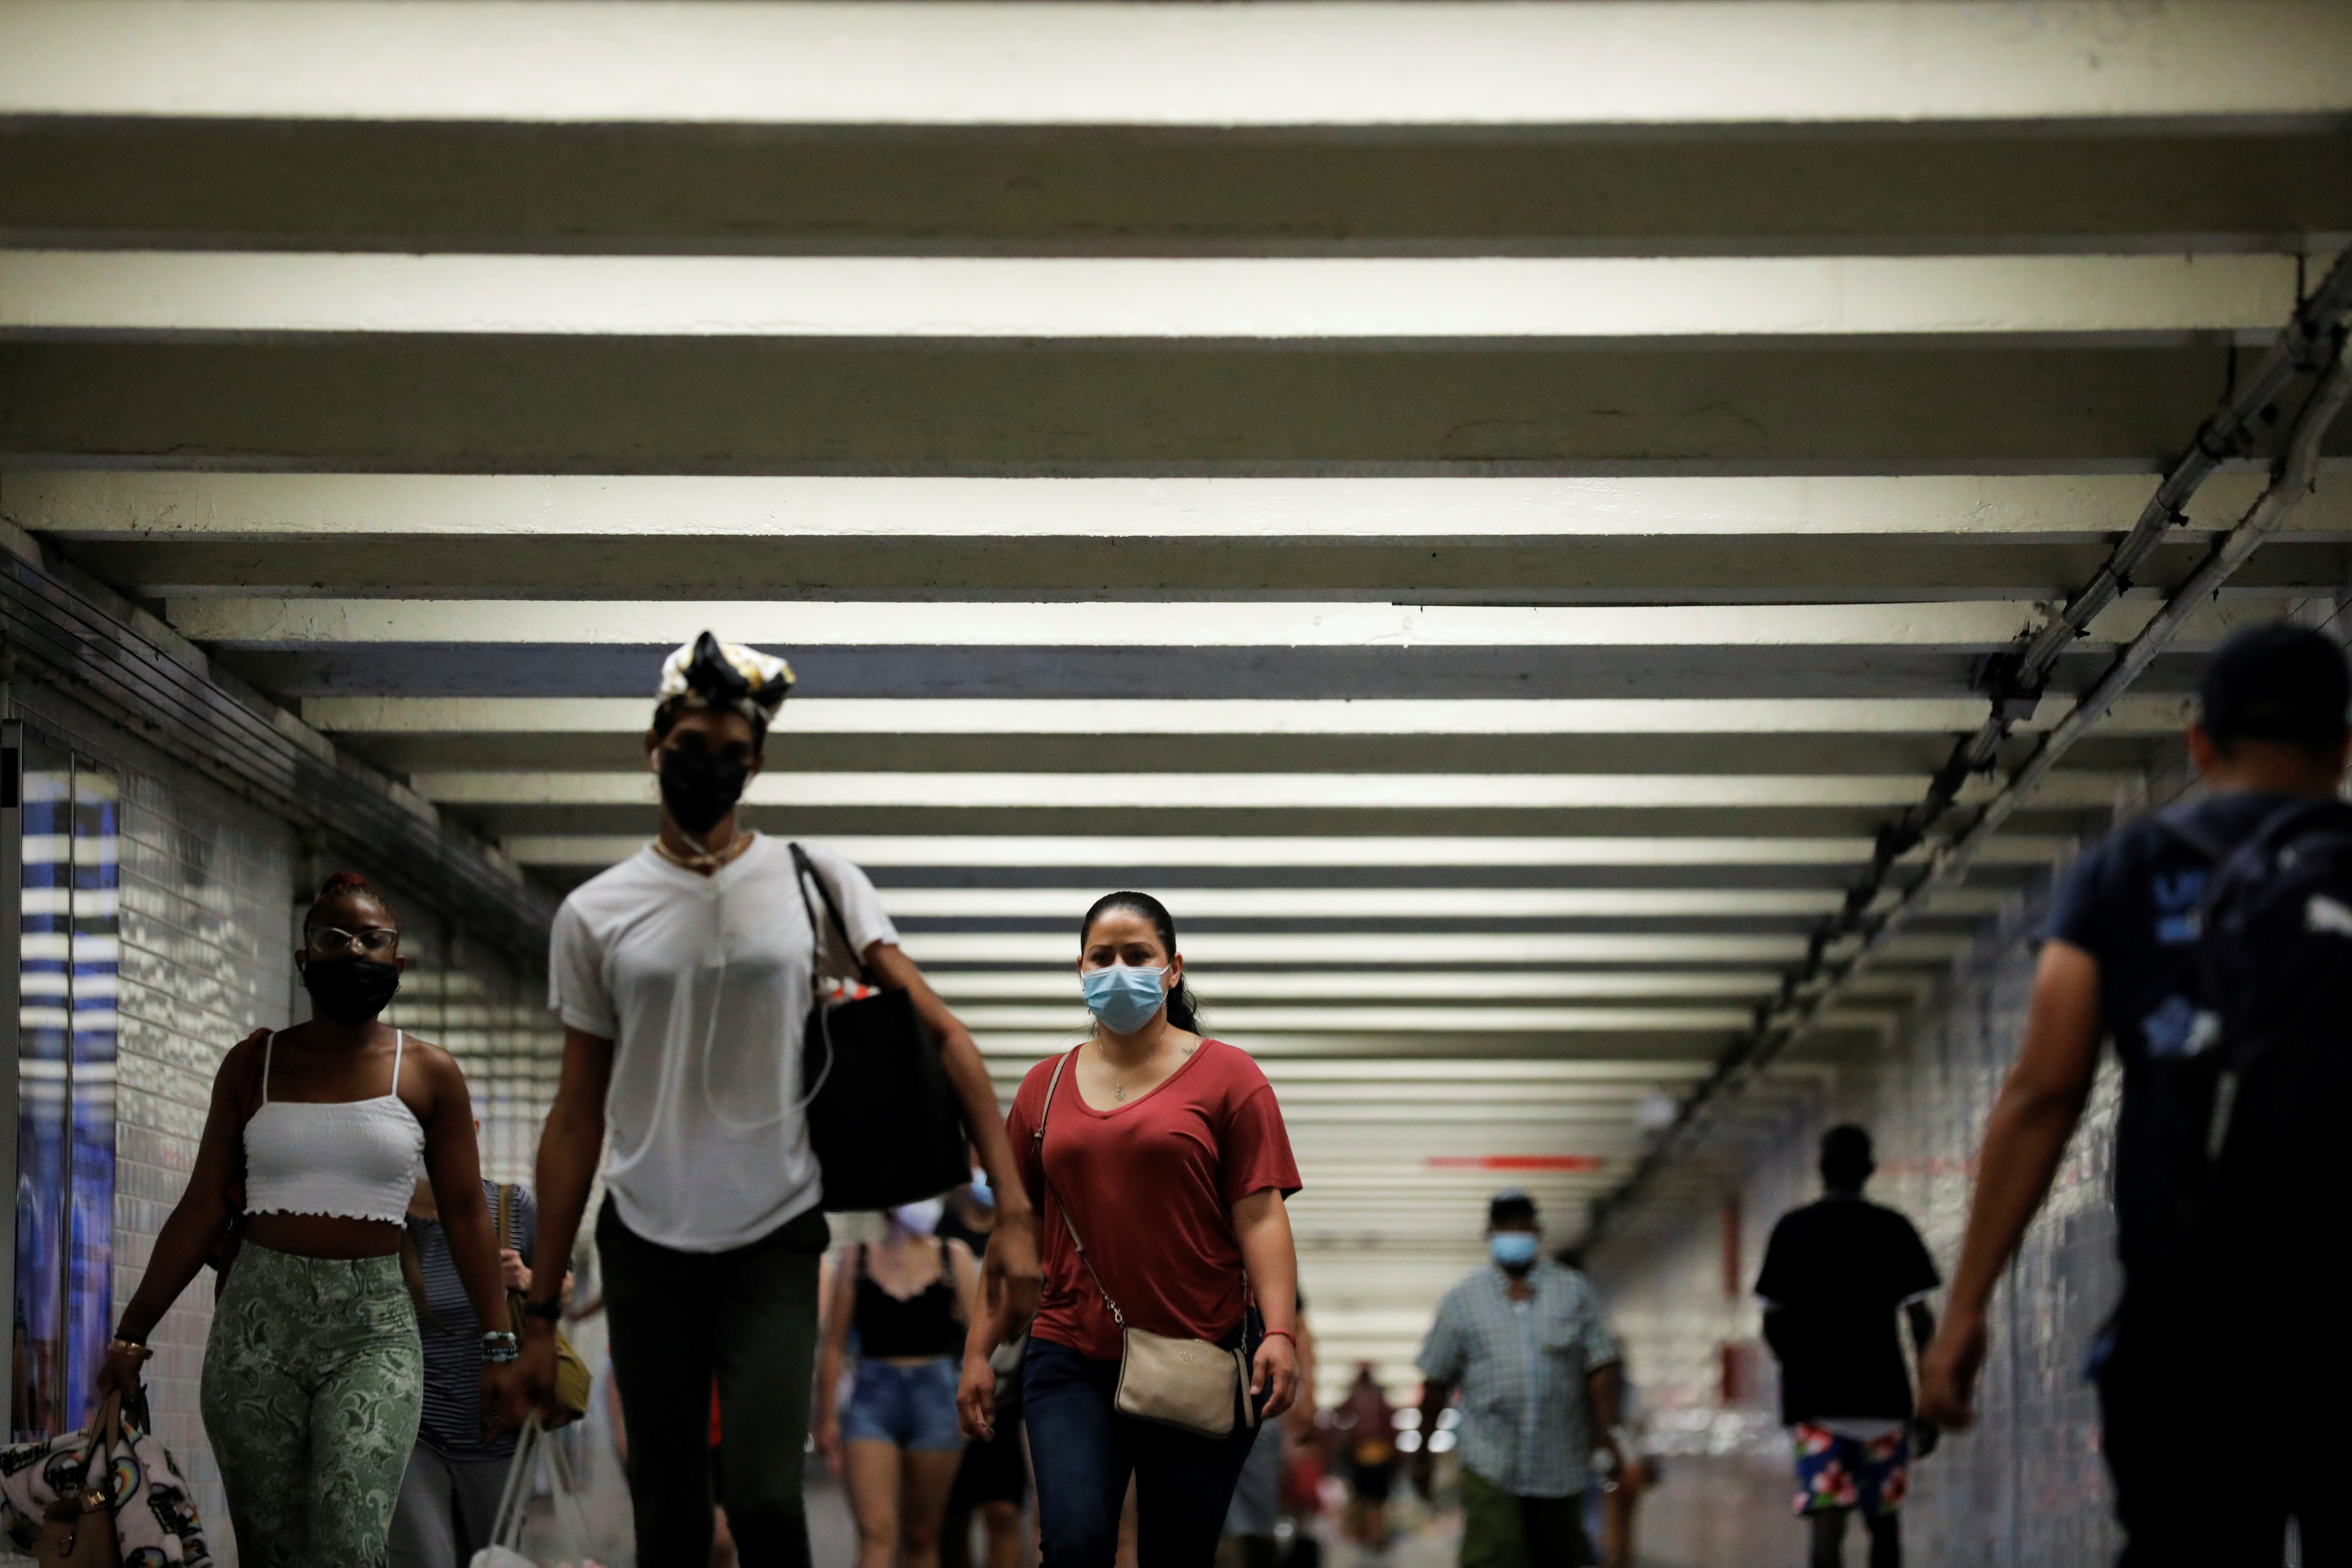 People wear masks as they pass through a pedestrian subway as cases of the infectious coronavirus Delta variant continue to rise in New York City, New York, U.S., July 26, 2021. REUTERS/Andrew Kelly